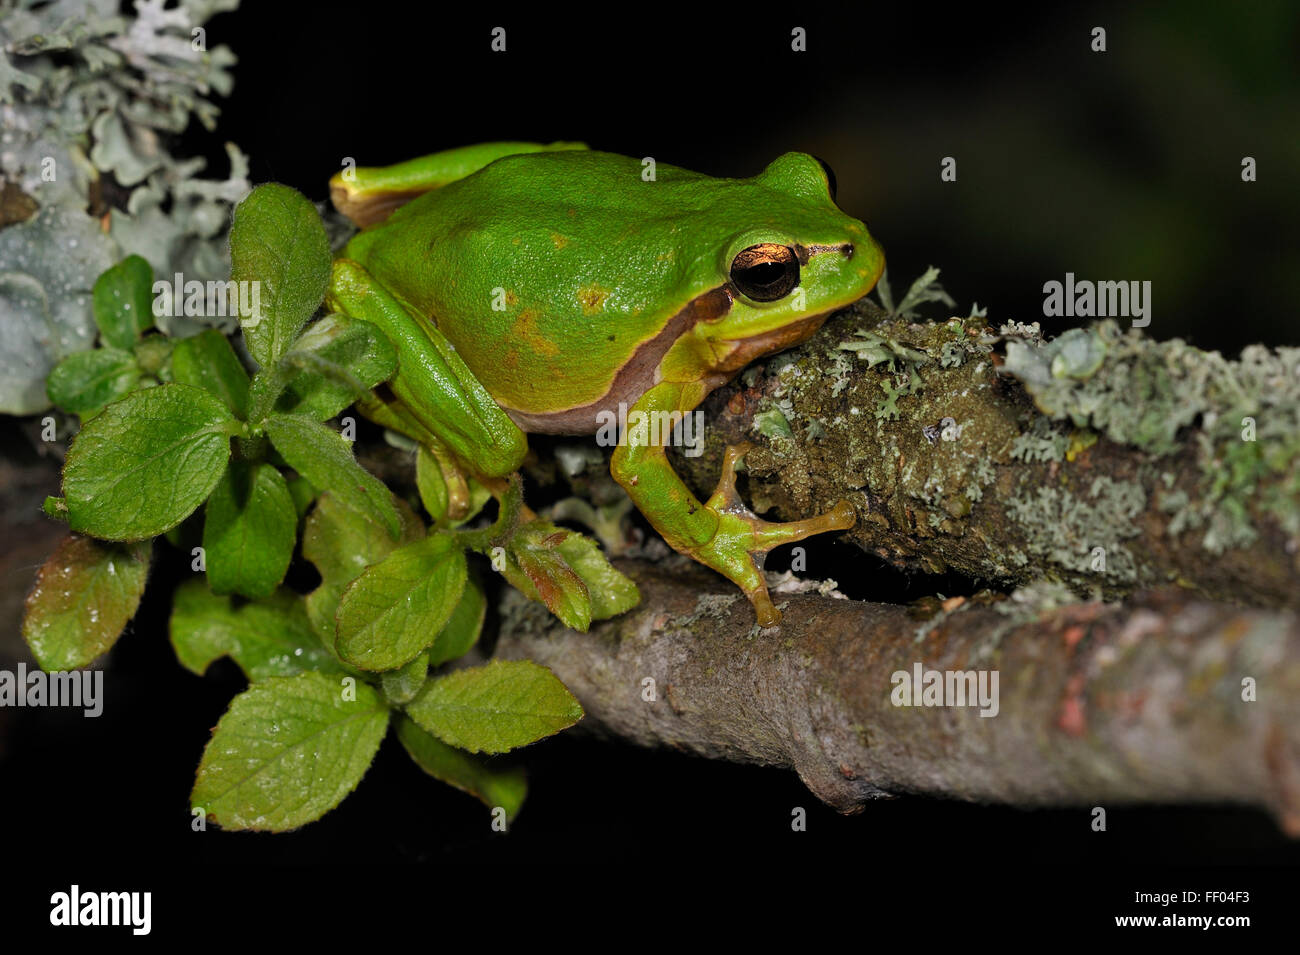 European / Common tree frog (Hyla arborea) sitting on branch covered in lichen at night Stock Photo